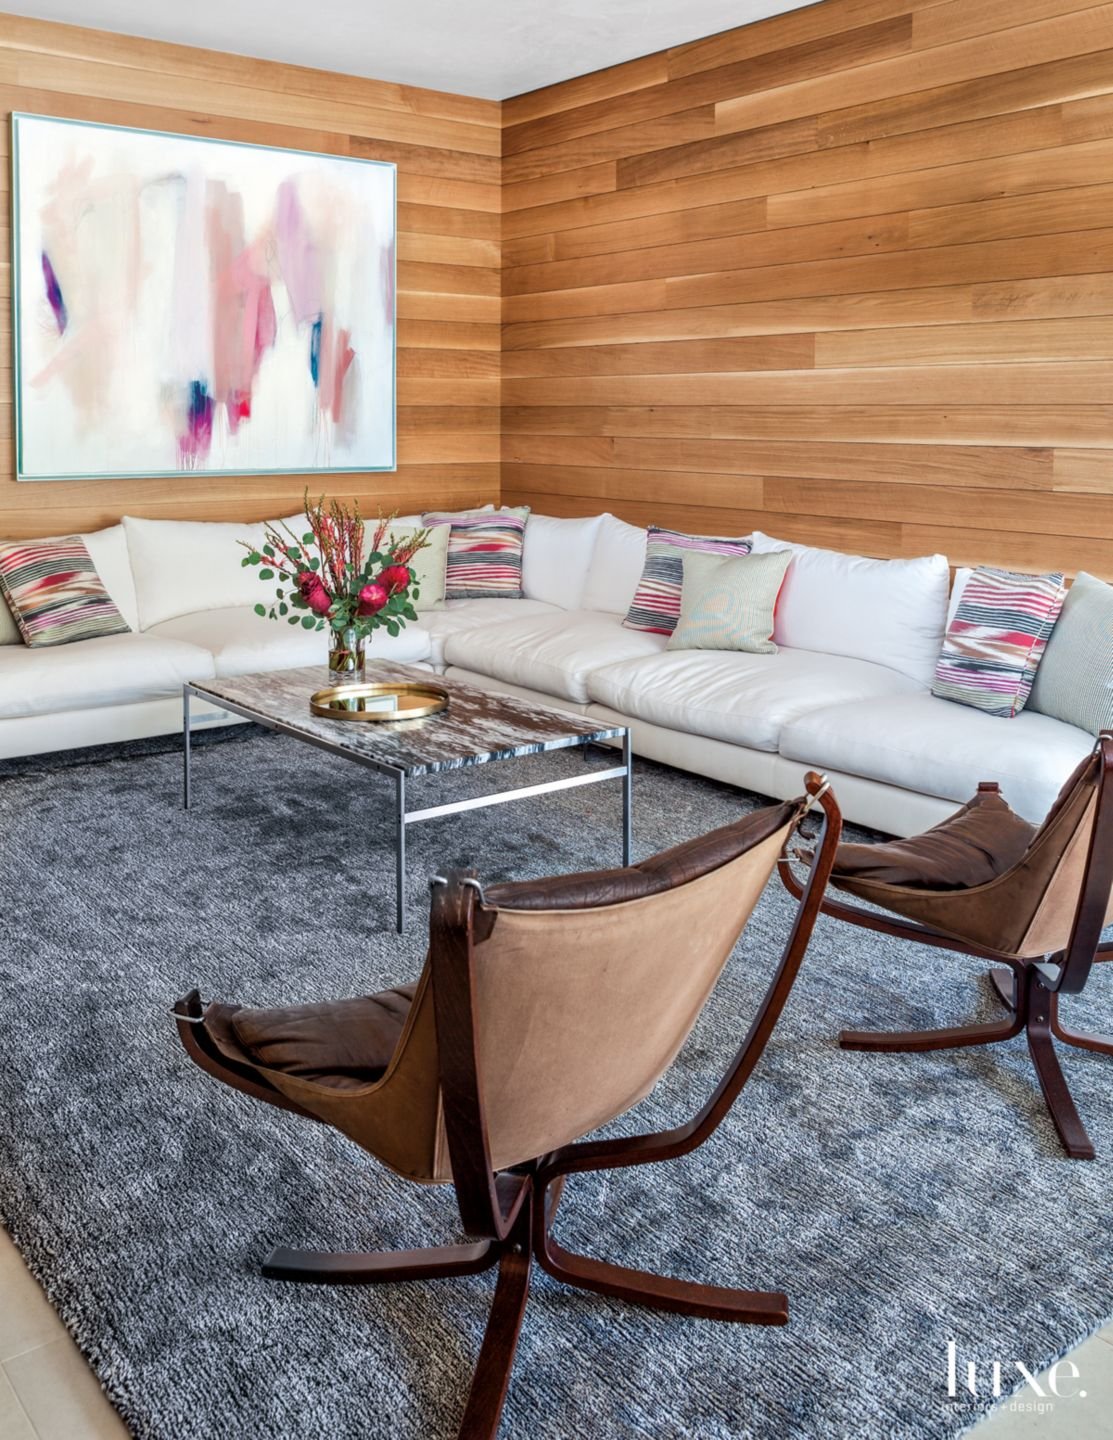 Modern Neutral Game Room with Wood-Paneled Walls